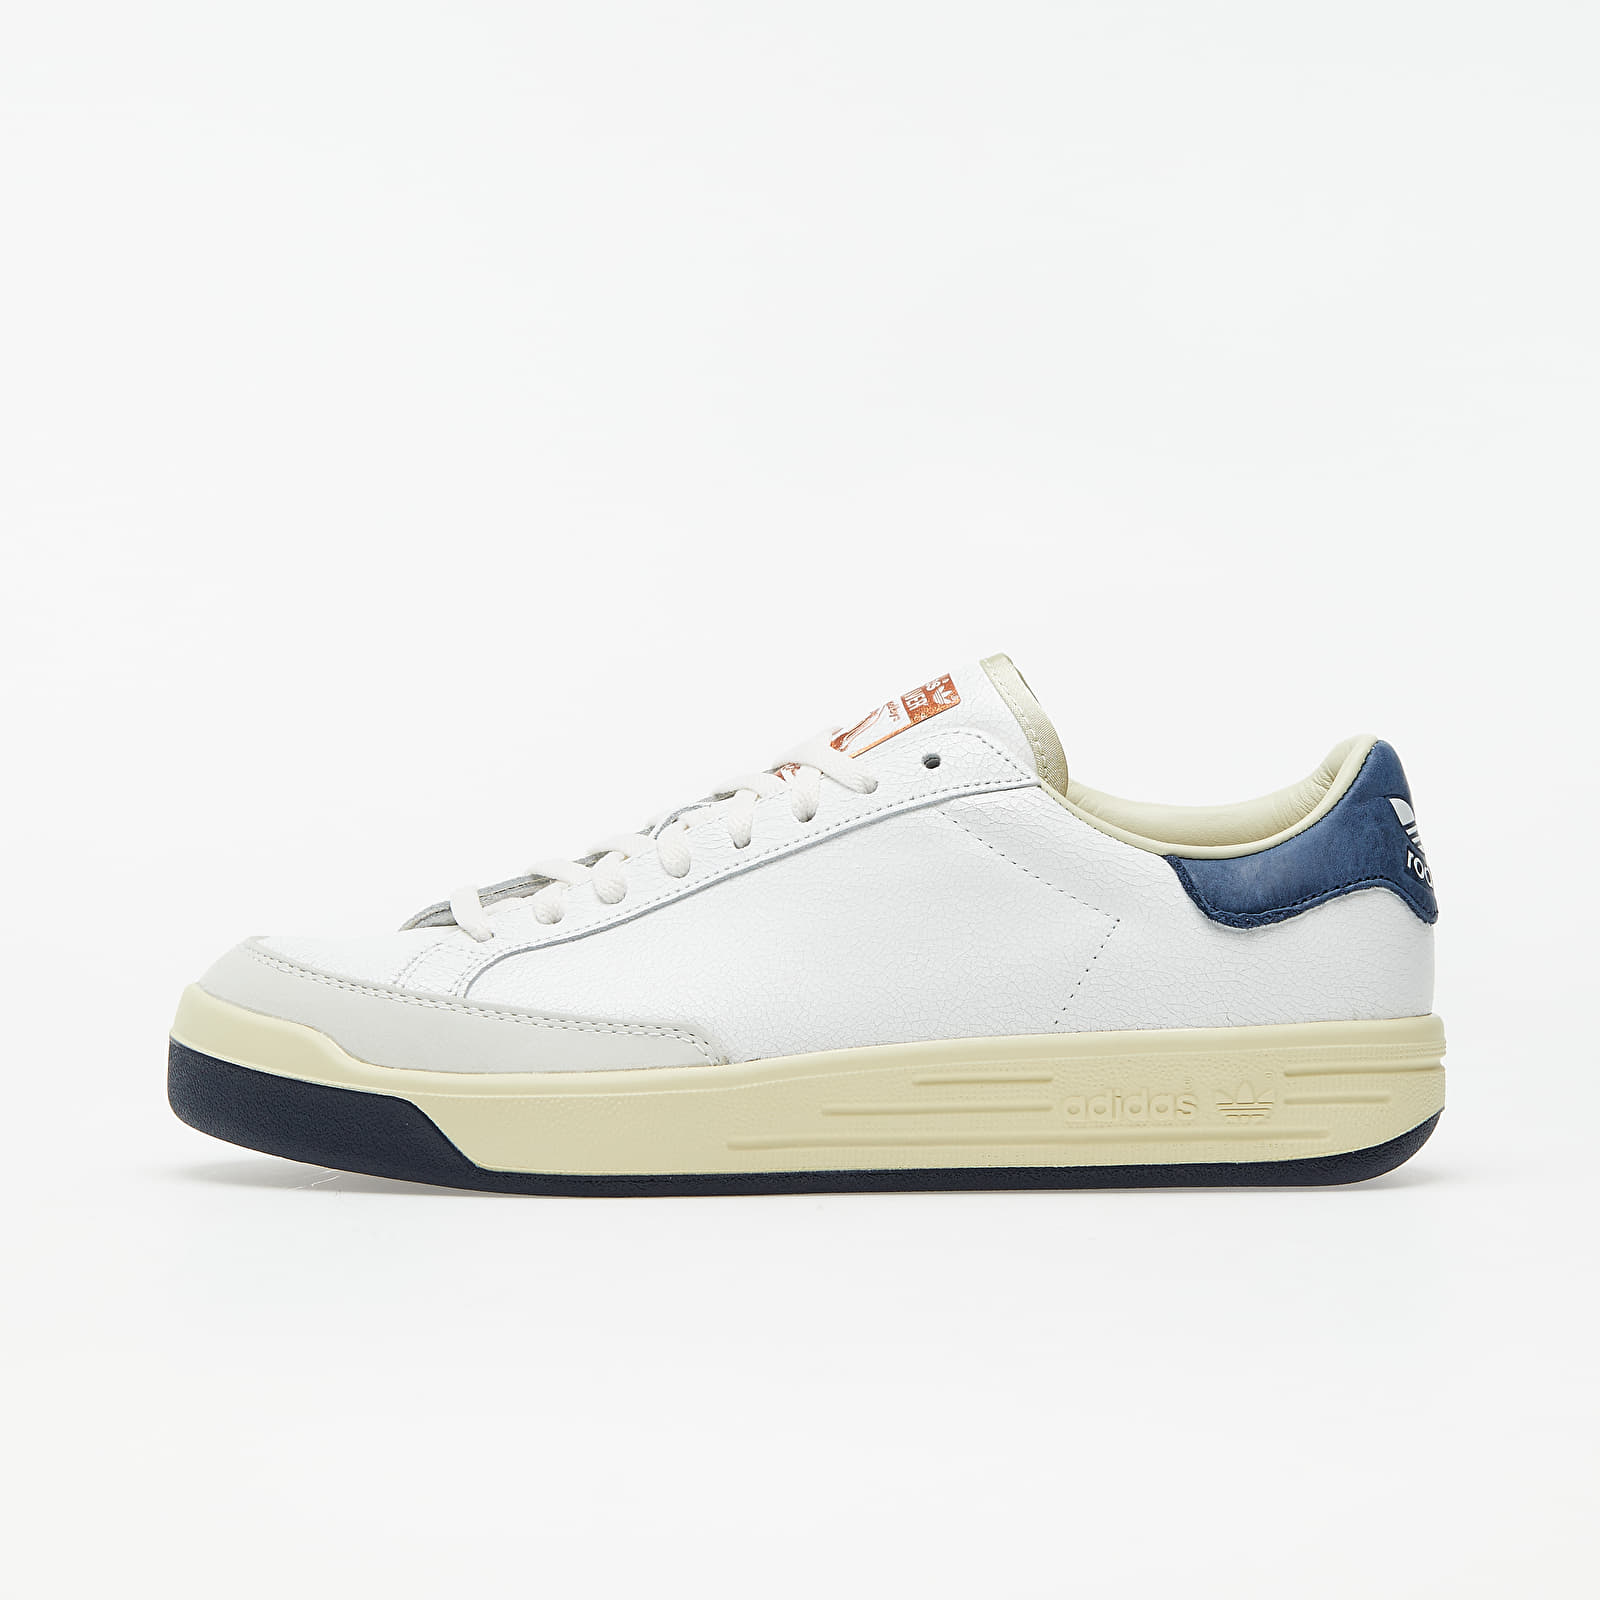 adidas Consortium Rod Laver Cracked Core White/ Core White/ Collegiate Navy FY4494